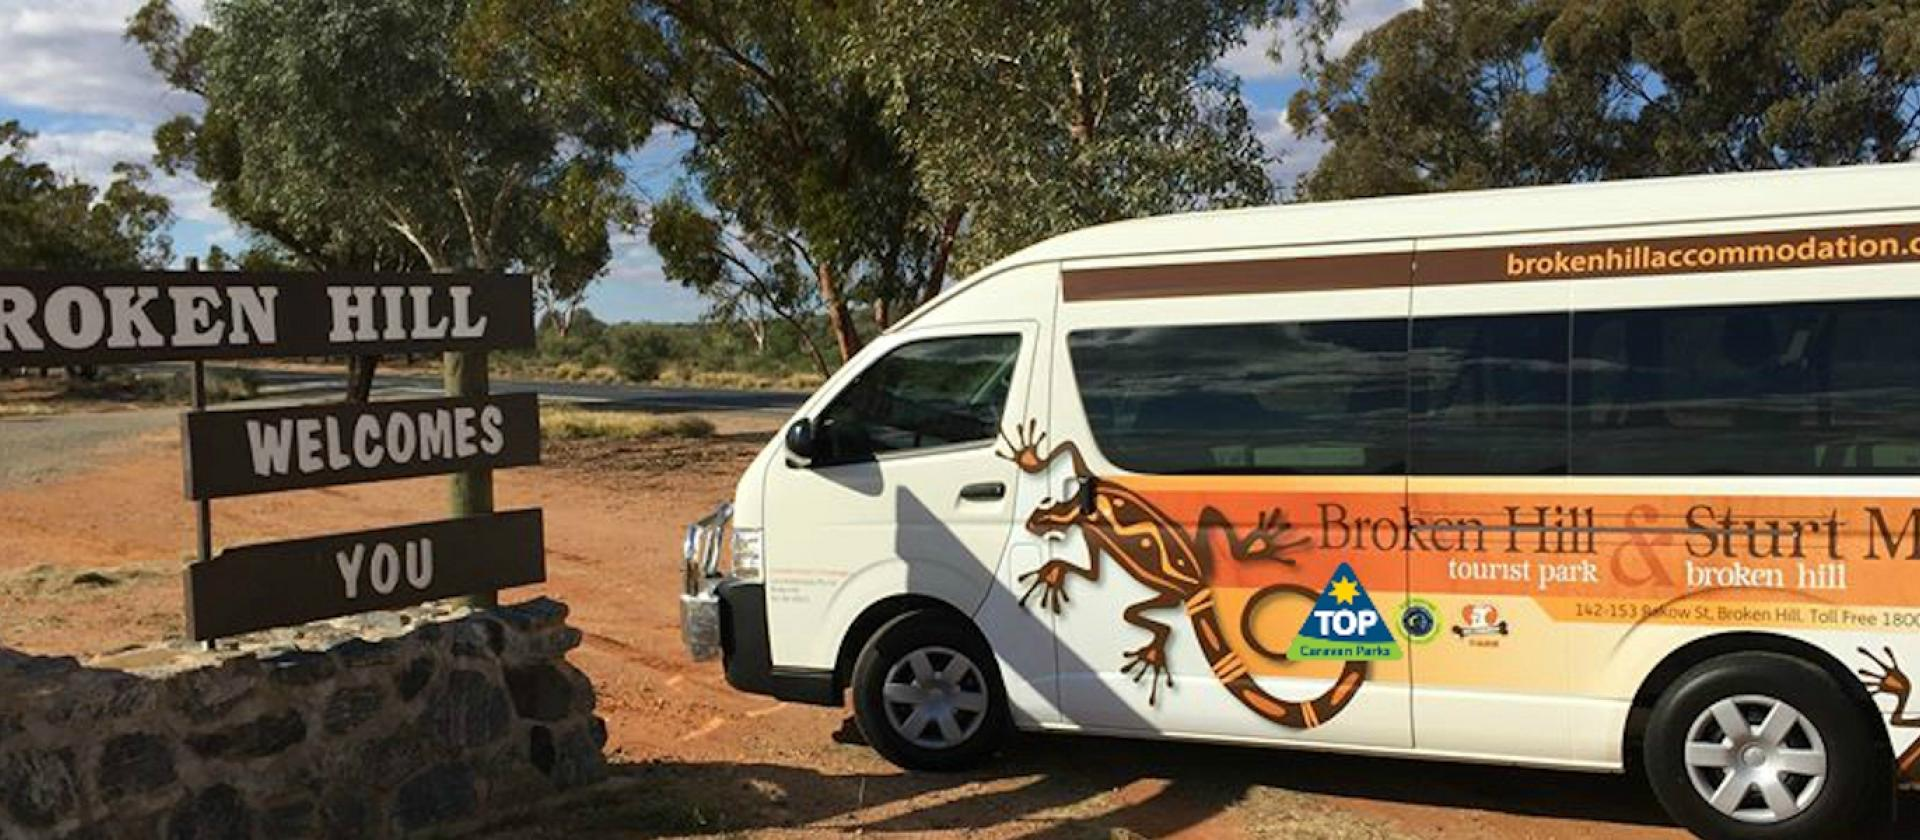 Experience Broken Hill like a local with Away Tours